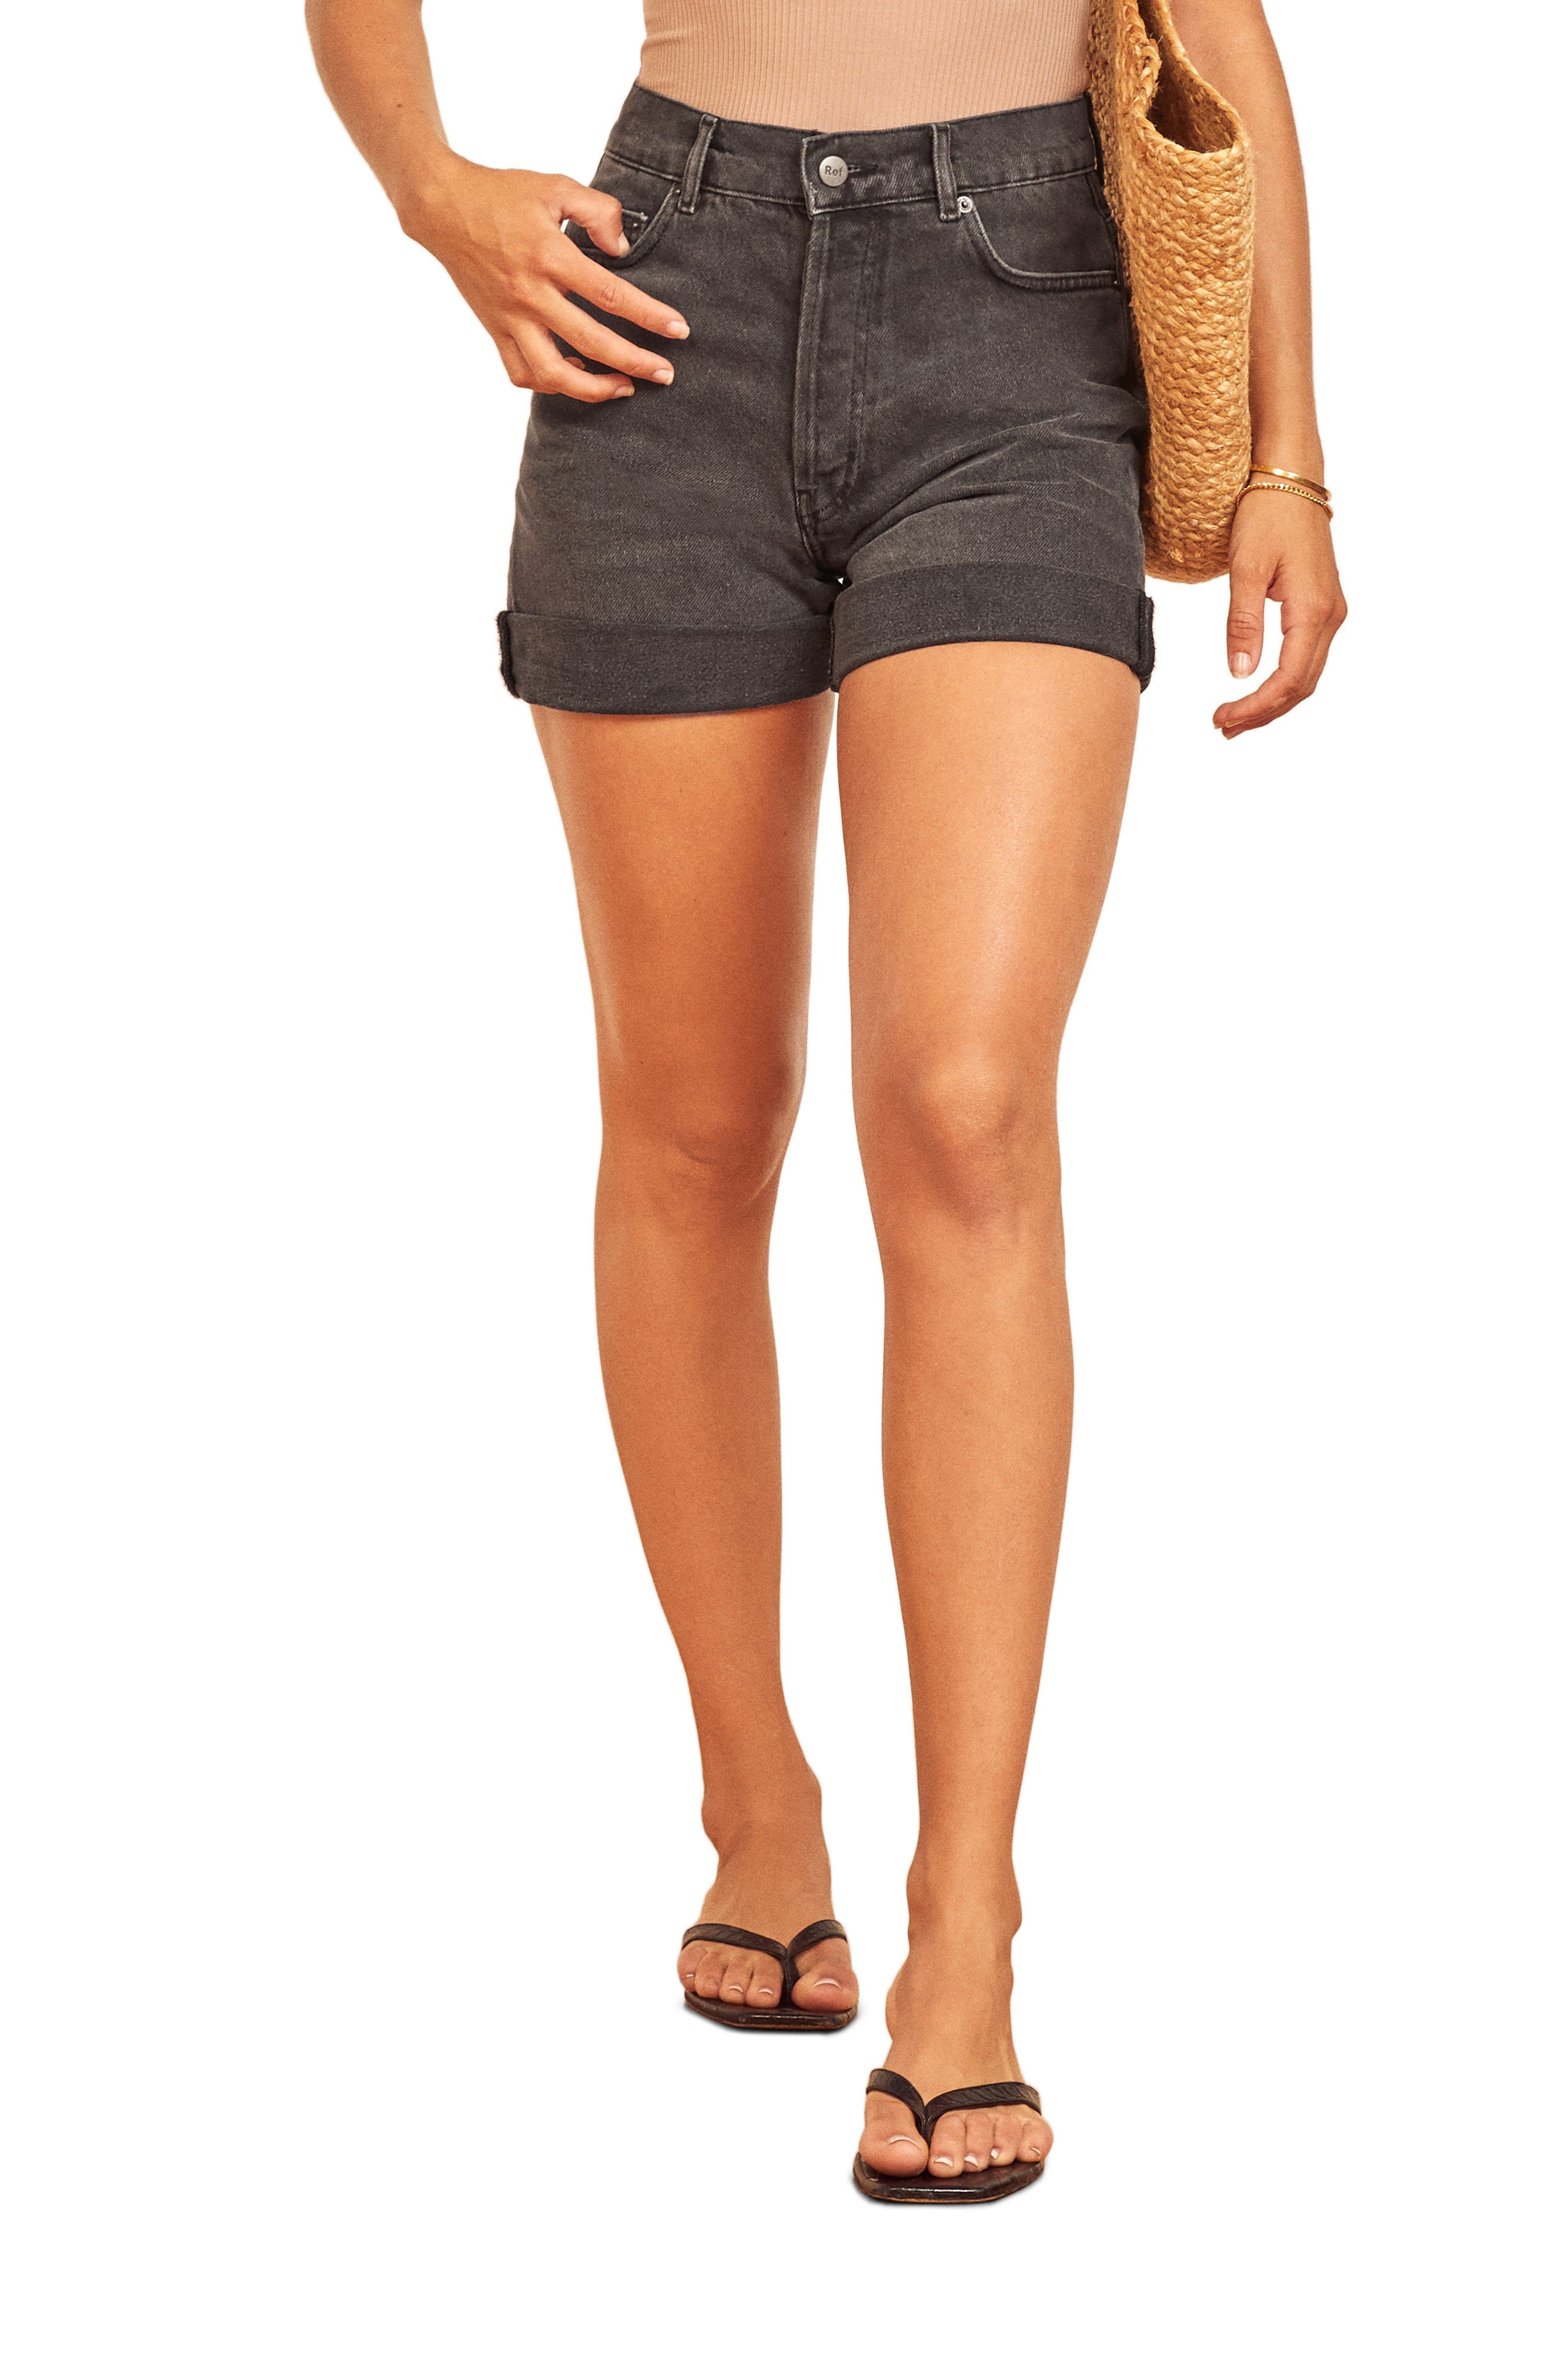 These denim shorts made with Tencel lyocell and organic cotton feature a relaxed fit and fraying cuffed hems for a cool, boyish look. Style Name: Reformation Max Relaxed Denim Shorts. Style Number: 6036518. Available in stores.